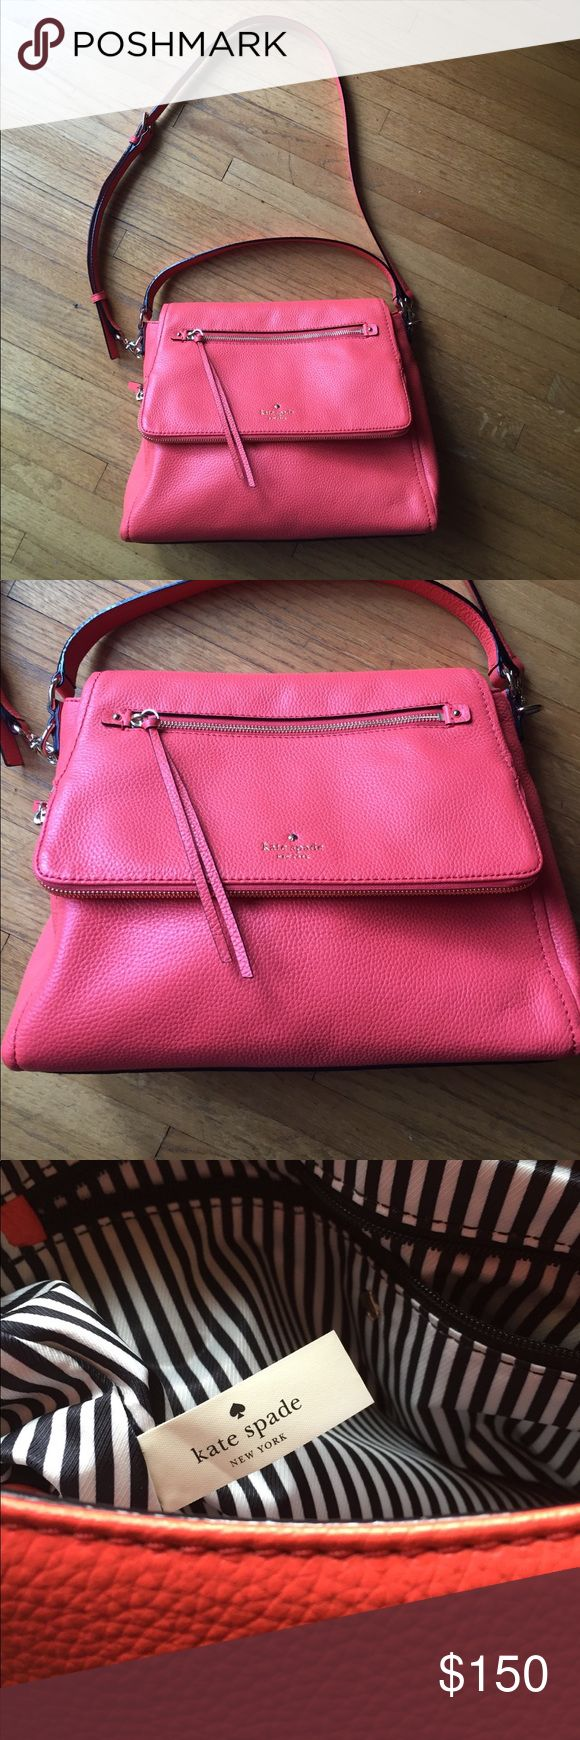 Kate Spade Cobble Hill Toddy Bright papaya, never used, comes with original storage bag, short and long straps, lots of pockets, medium sized bag kate spade Bags